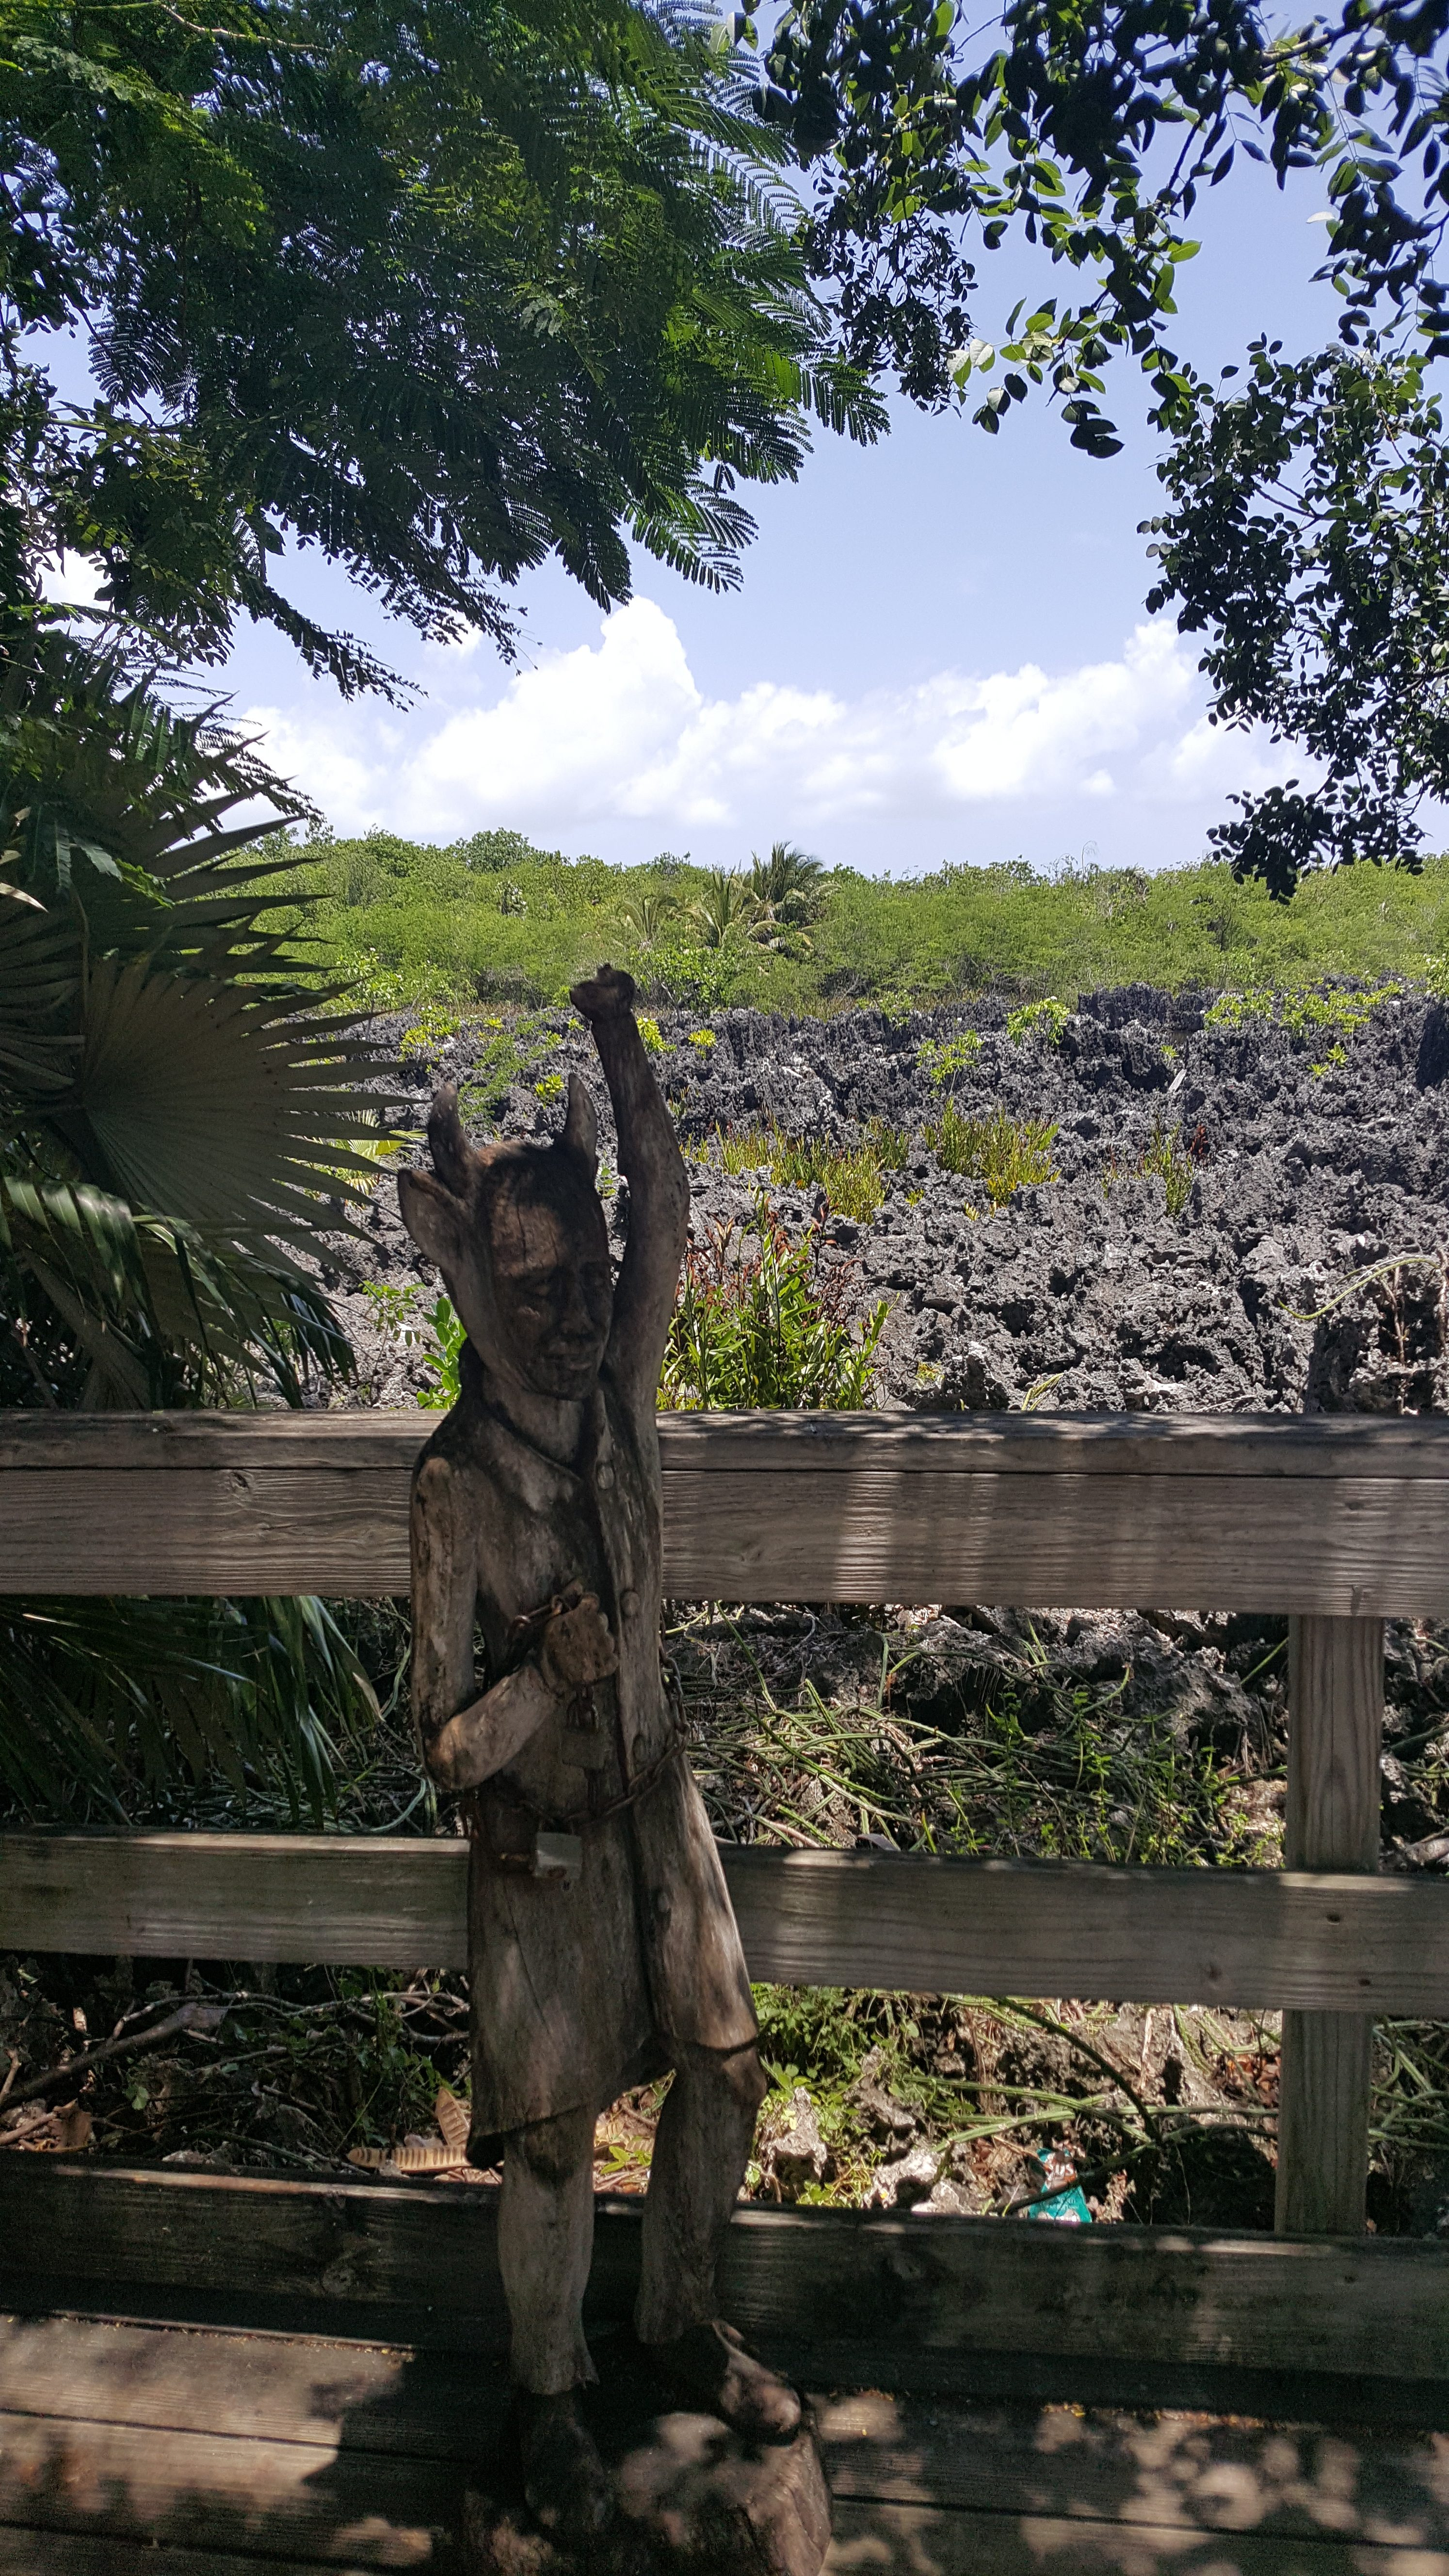 A wooden carving of the devil at a viewing area overlooking the black, gnarly rock dotted with palms and bristly greenery